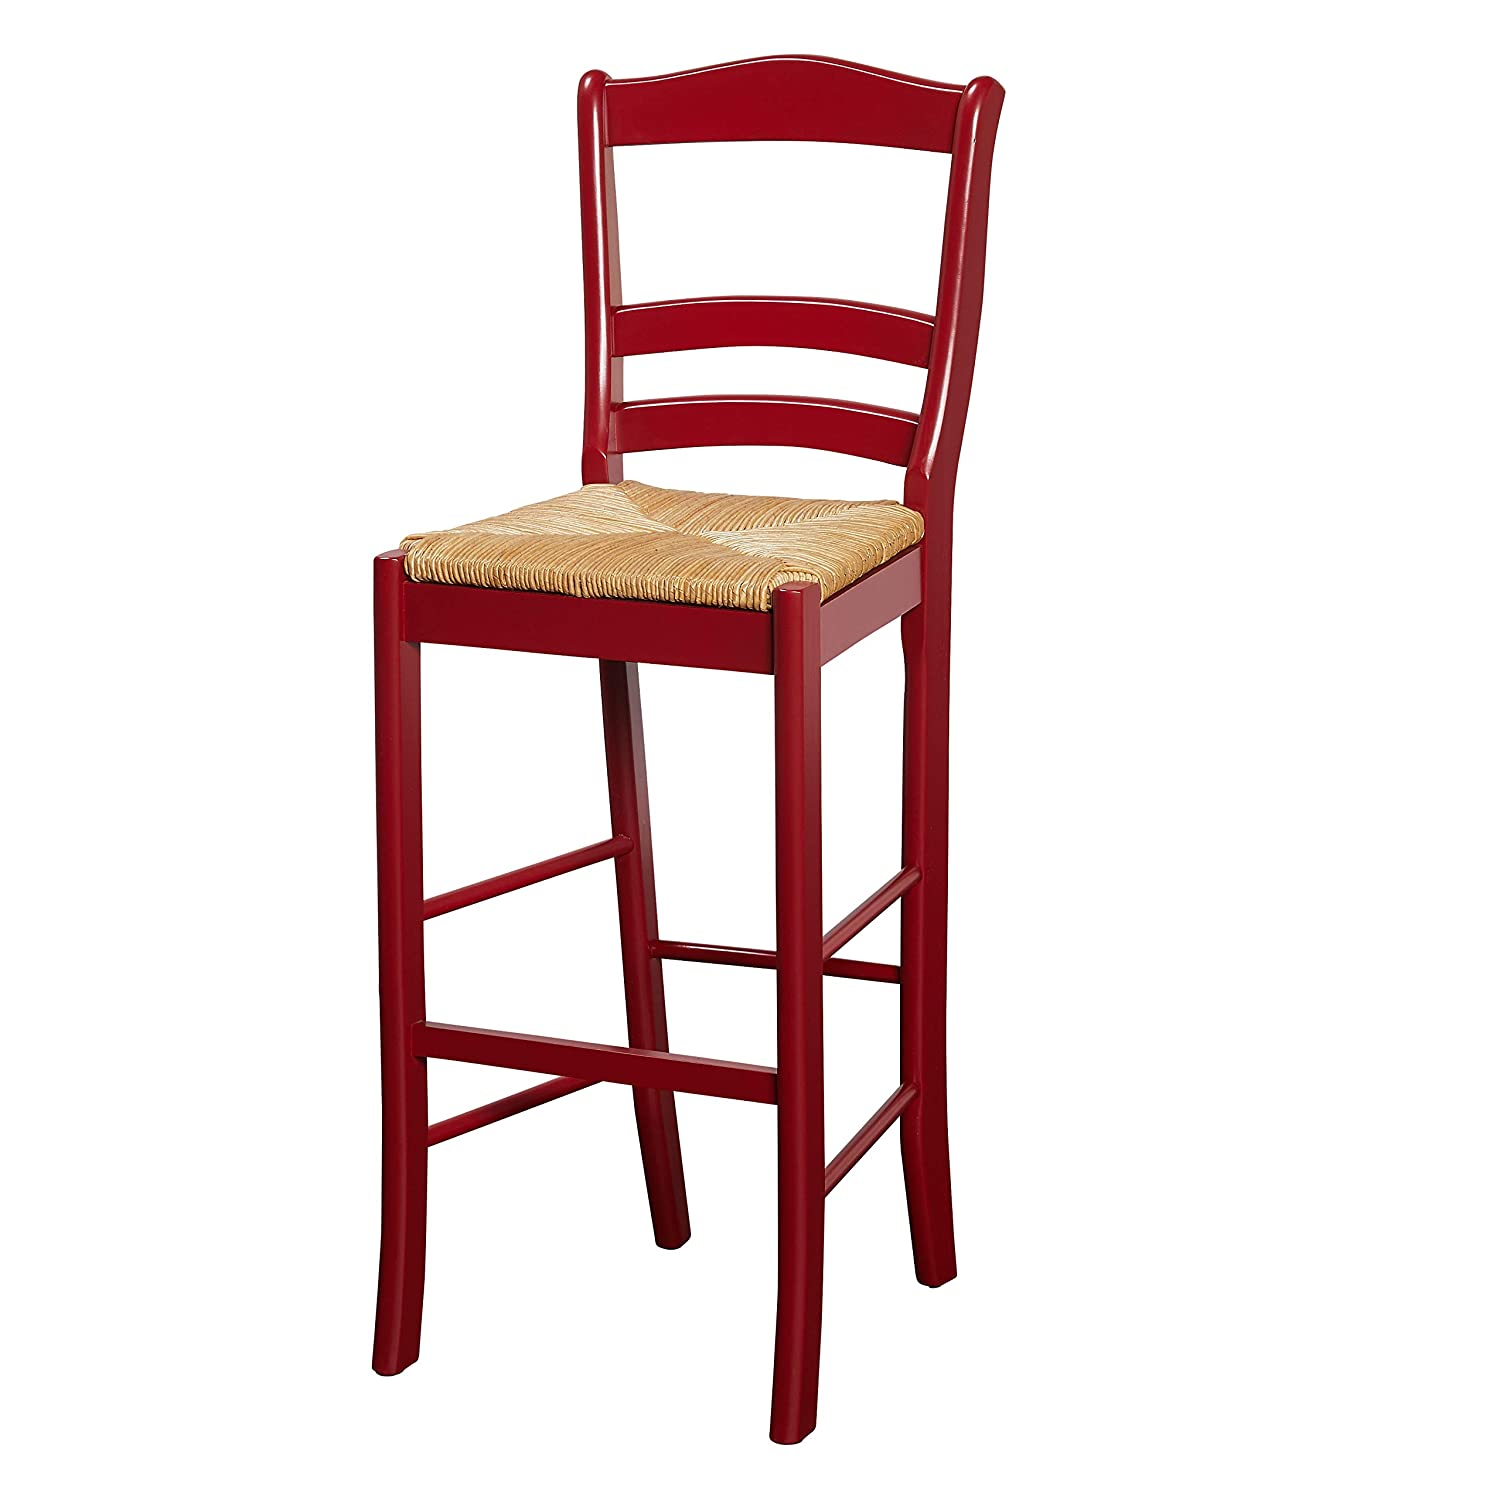 Marvelous Tms 30 Inch Paloma Stool Red Evergreenethics Interior Chair Design Evergreenethicsorg